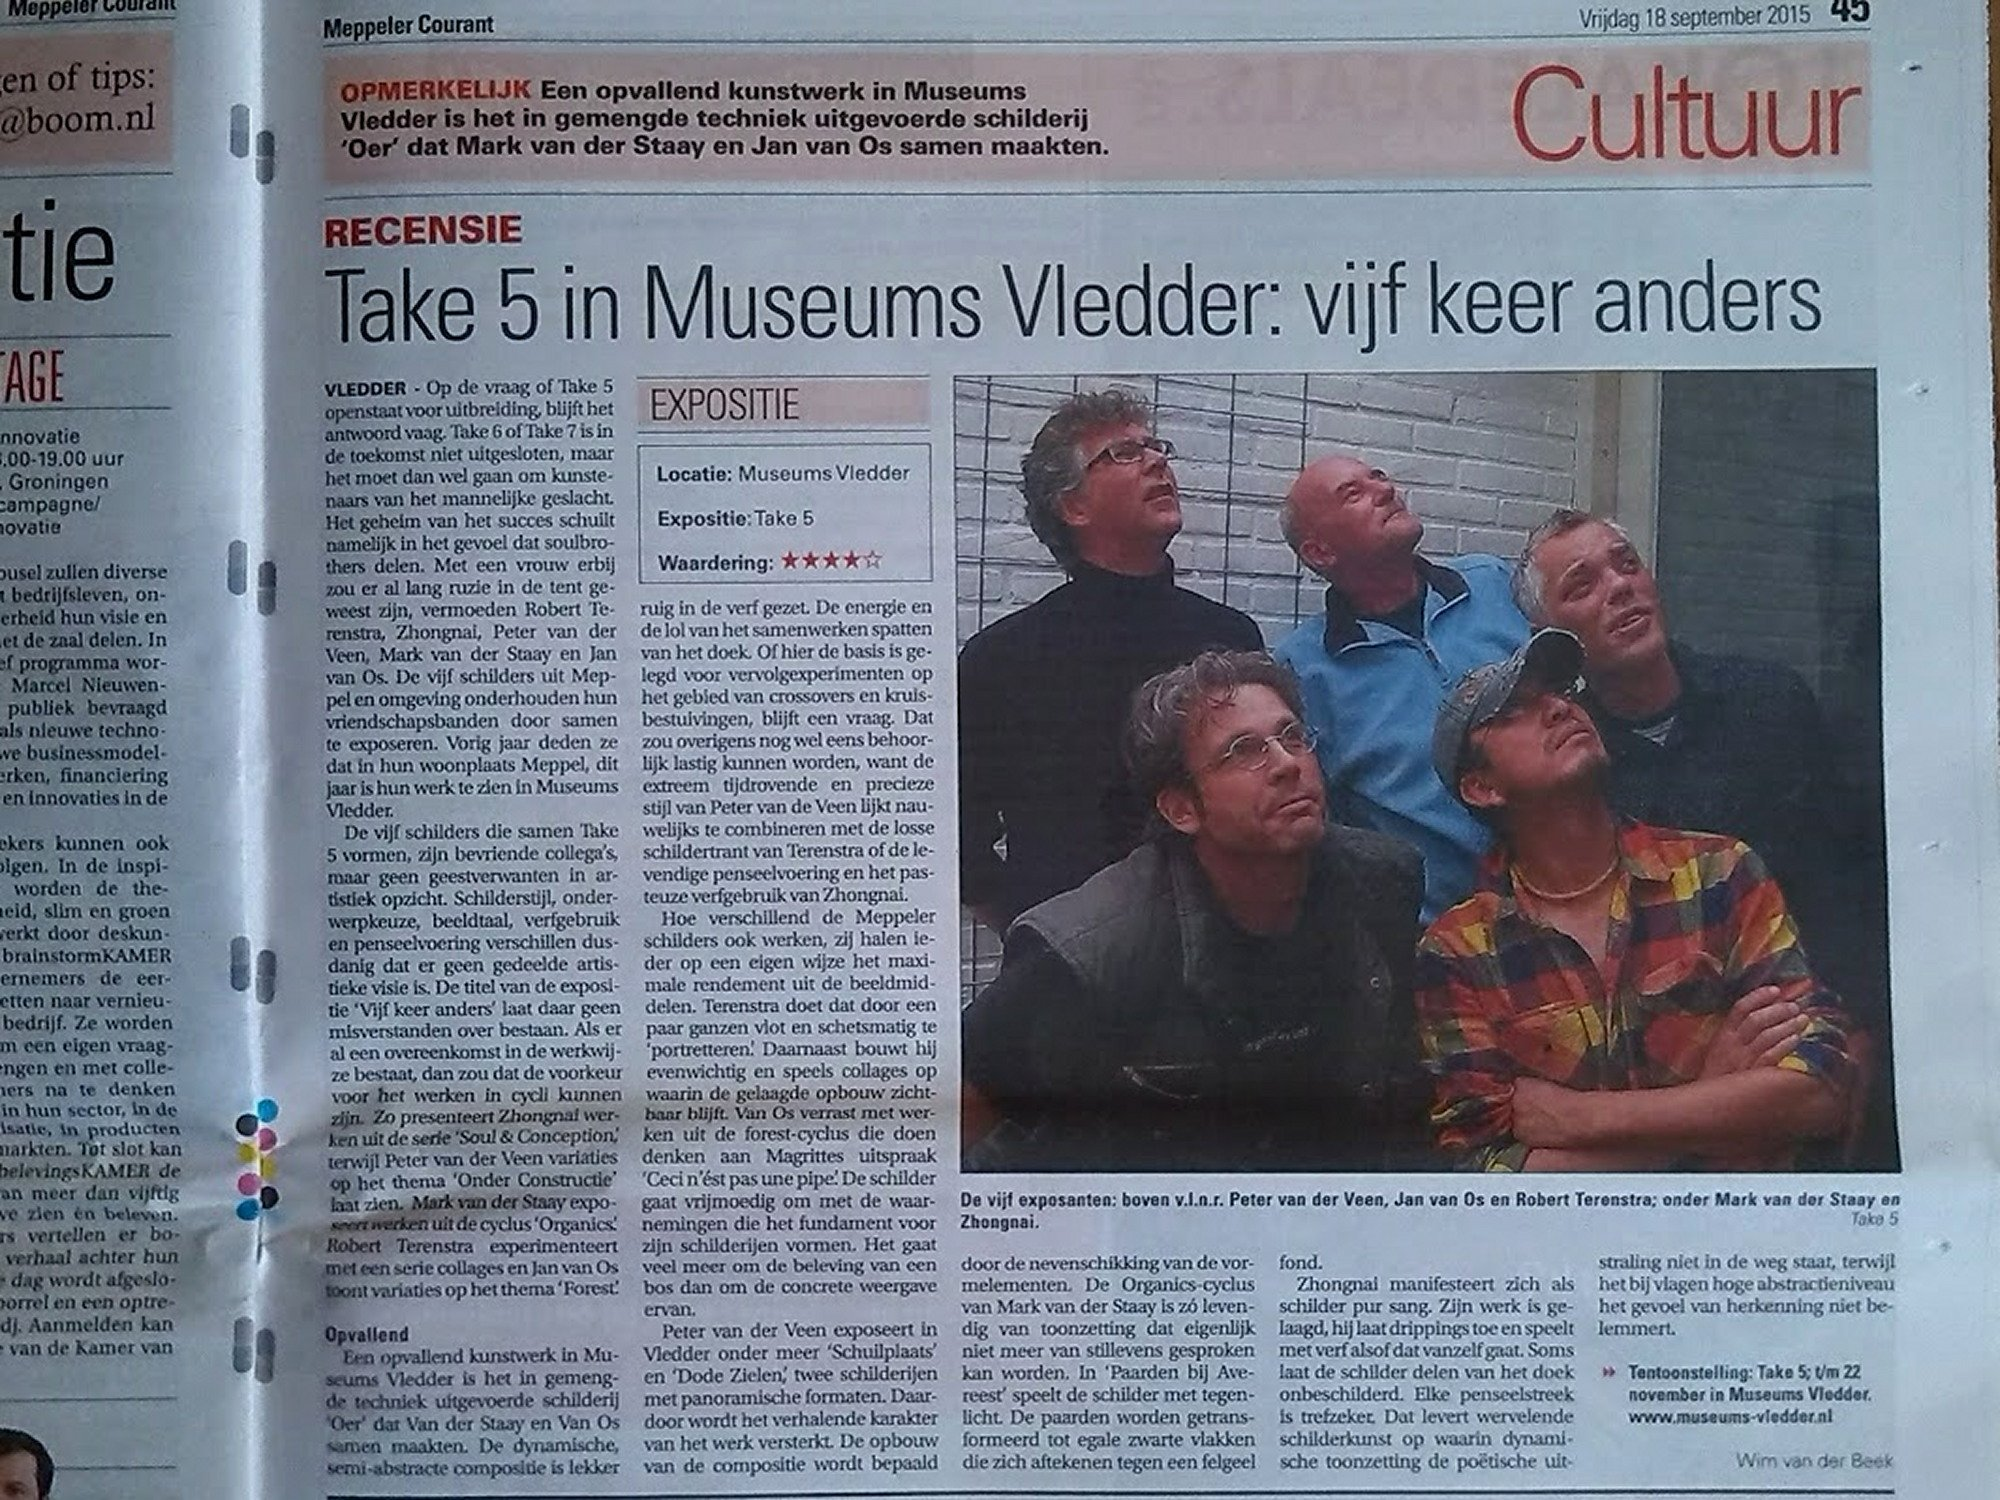 2015. Take 5 expo, Museums Vledder.